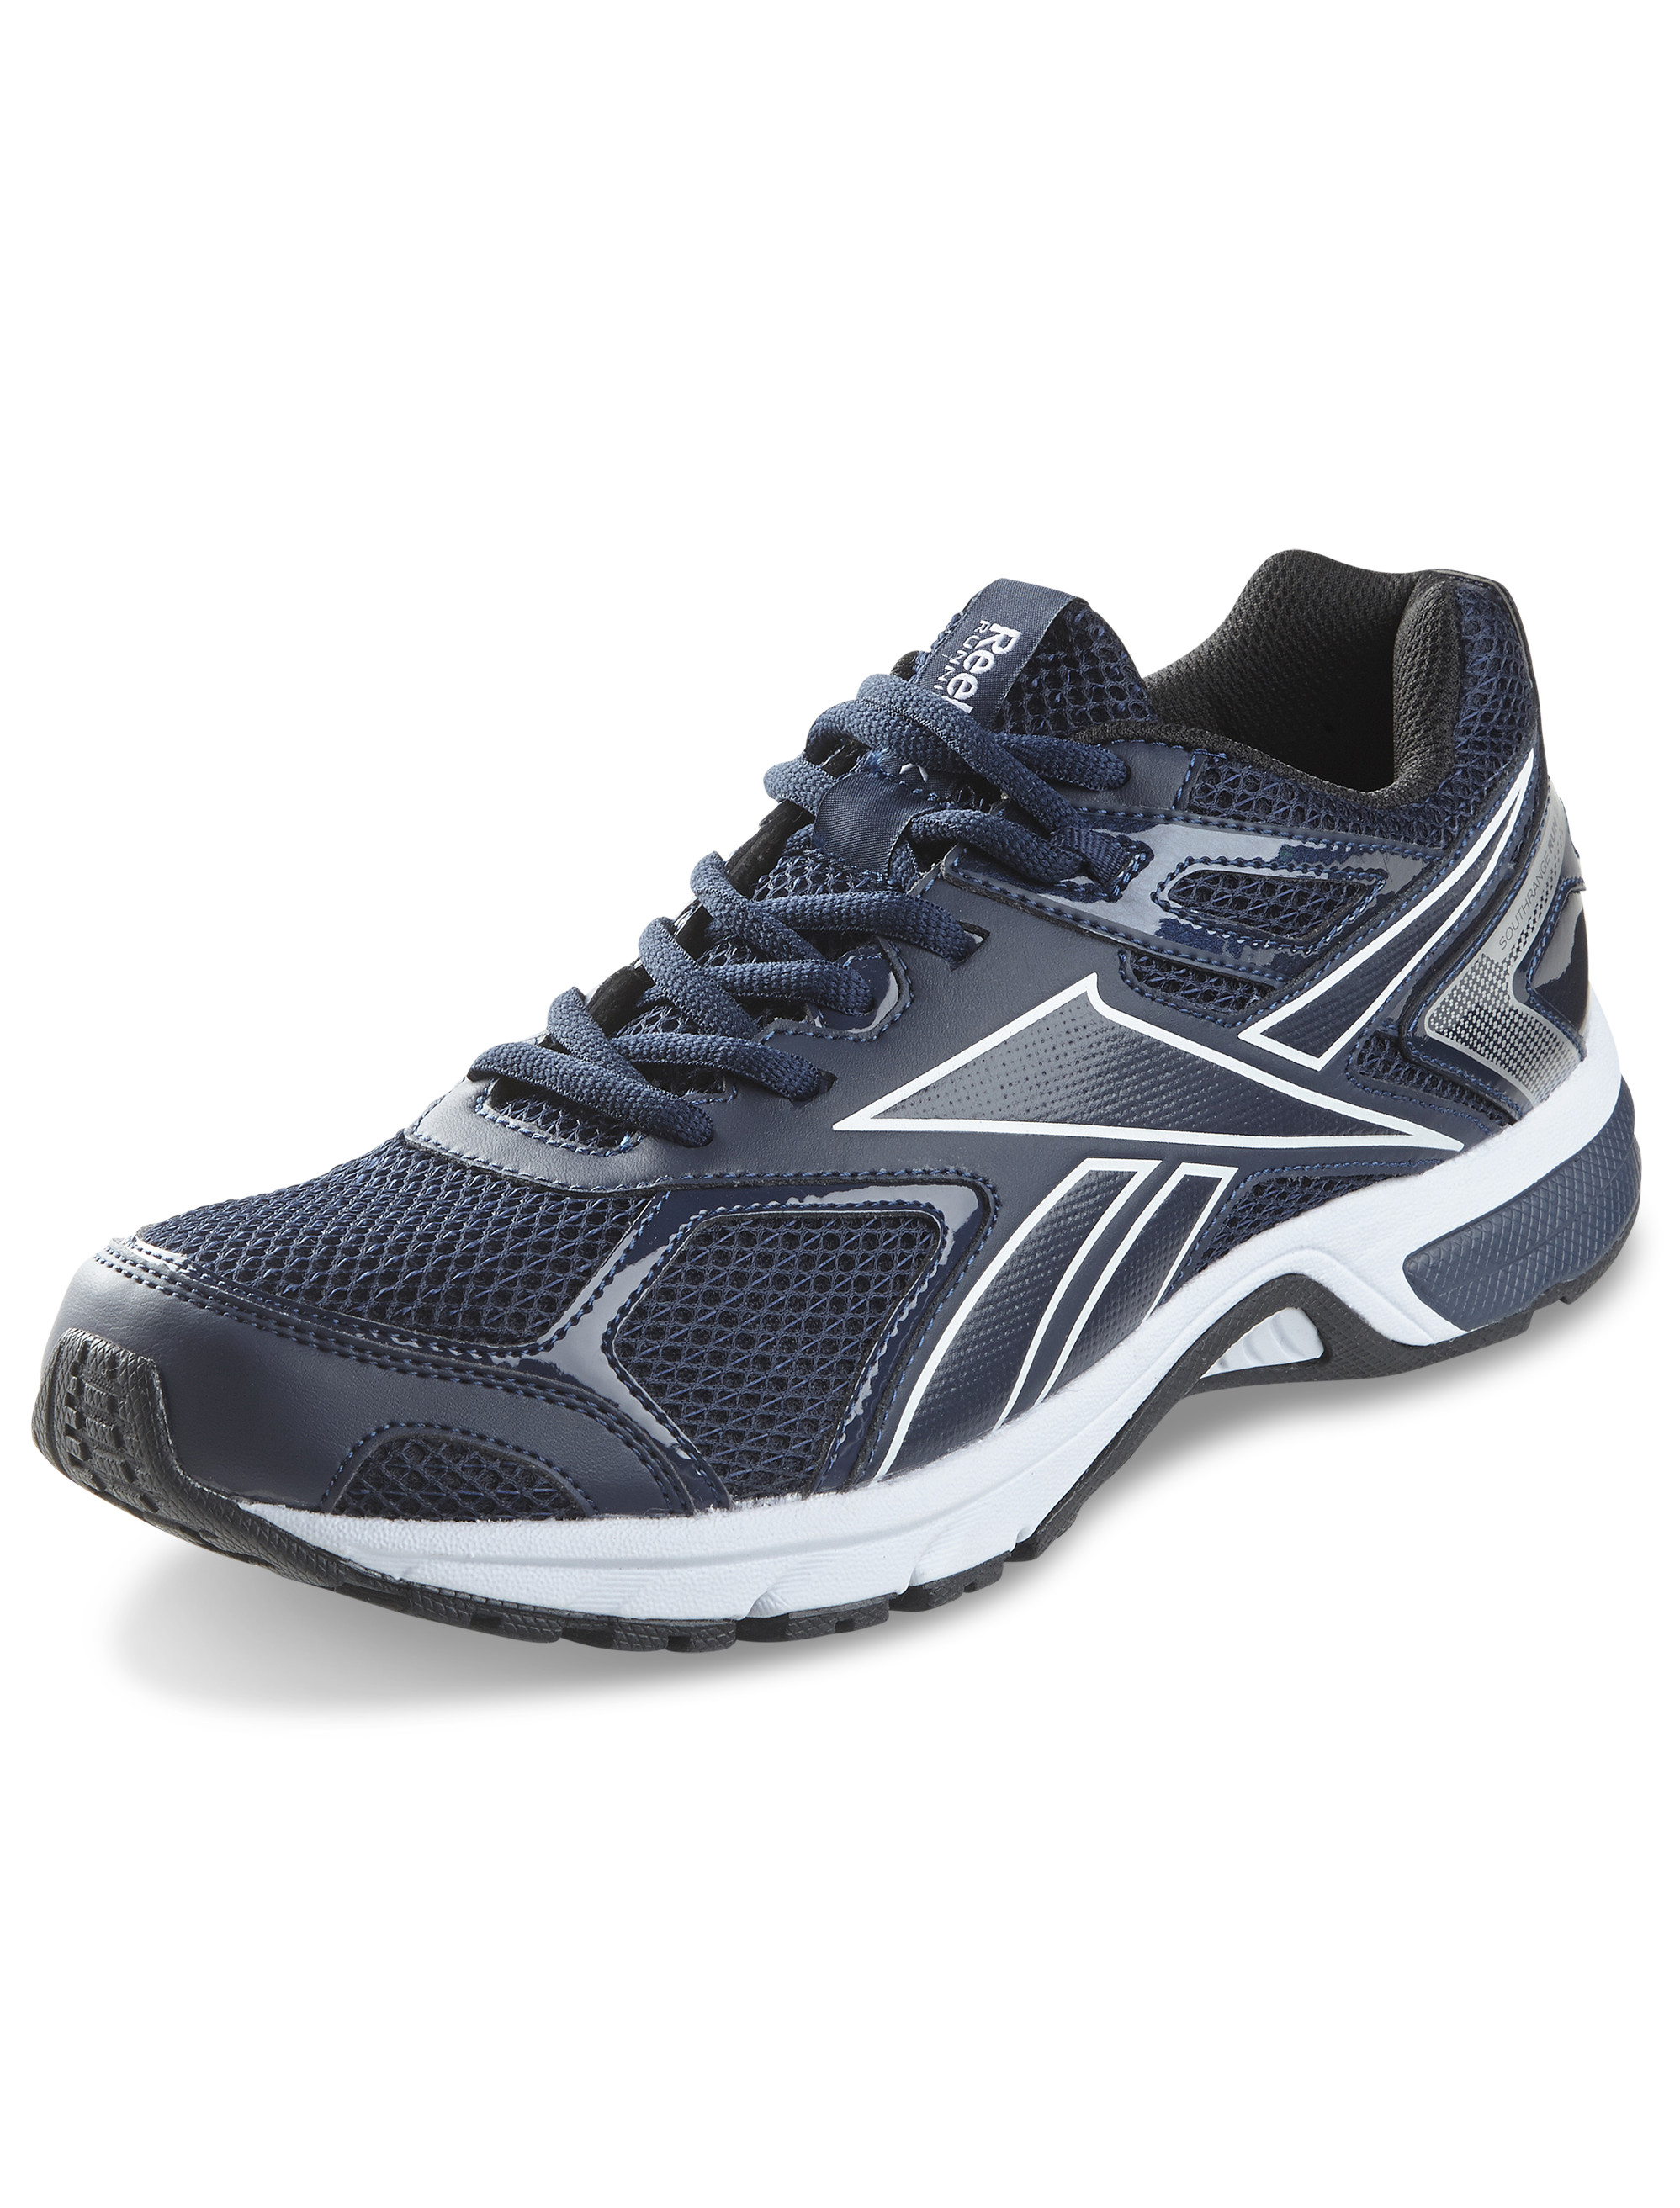 Reebok Quickchase Runners Casual Male XL Big & Tall